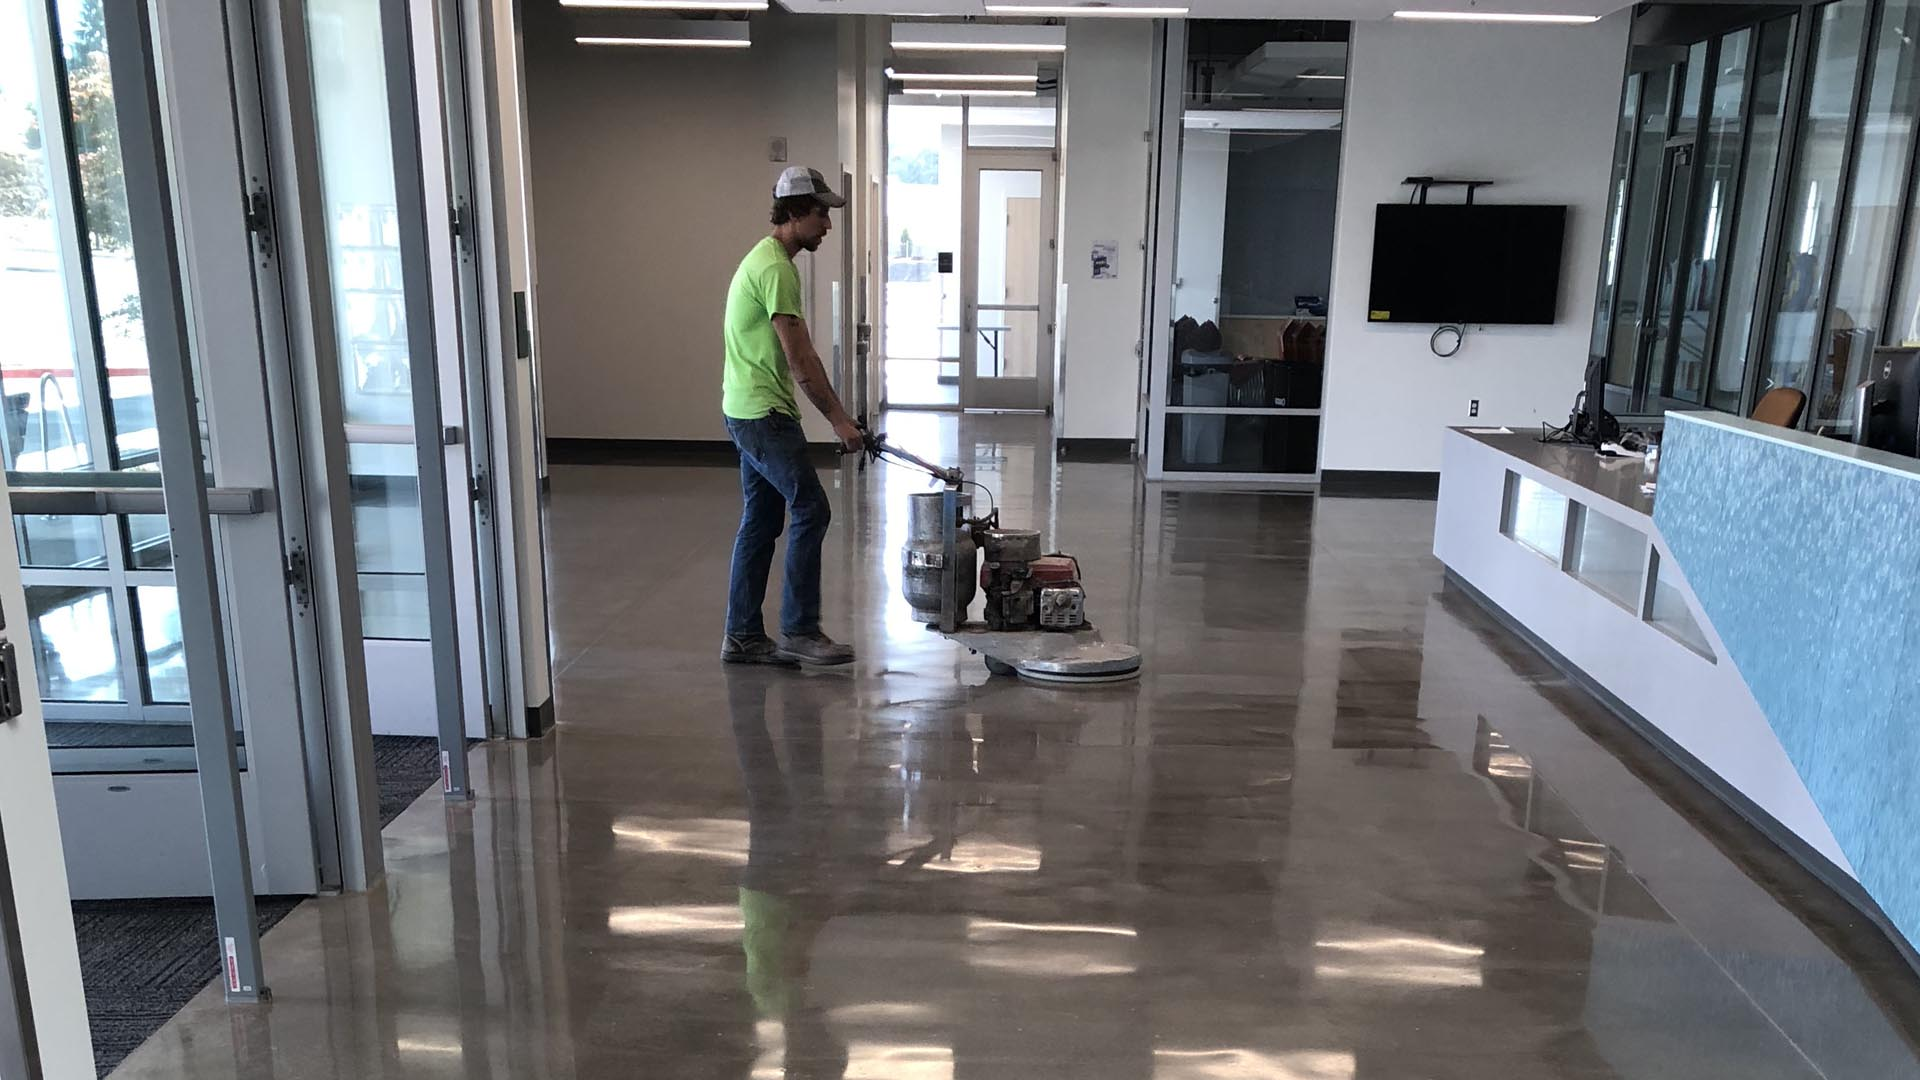 JS Concrete Finishing LLC: Polished Concrete, Epoxy Flooring and Concrete Grinding in Portland OR, Beaverton OR and Tigard OR